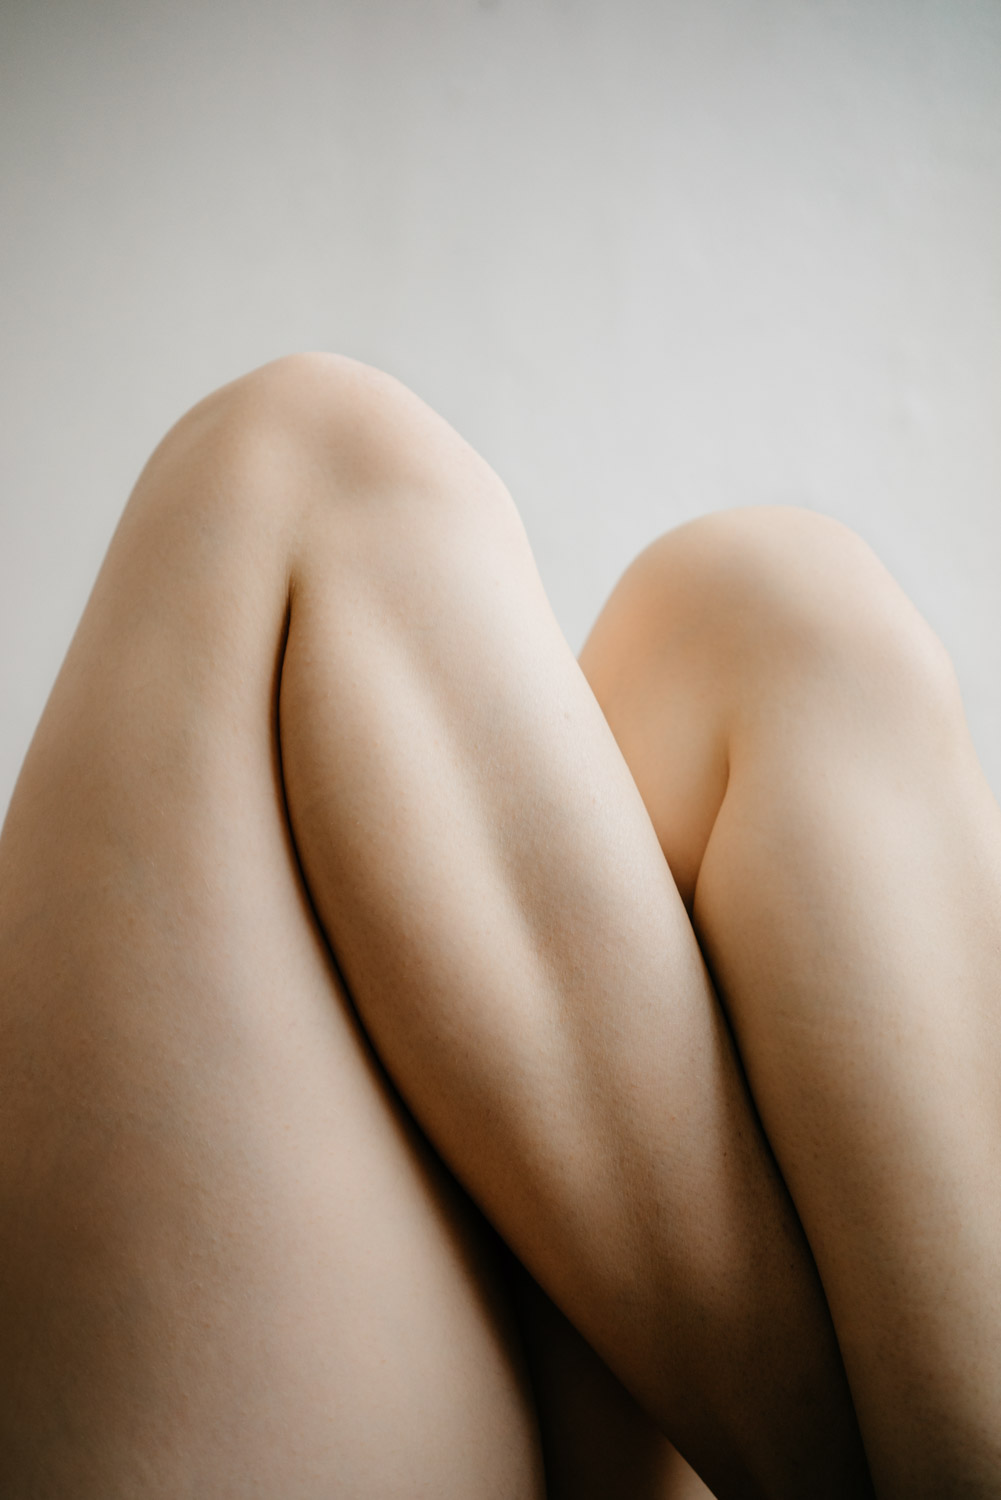 Delphine Millet Fagments - Body legs pain vulnerable dance human condition lonely photography minimalist graphic delicate - Art conceptual photographer in Berlin